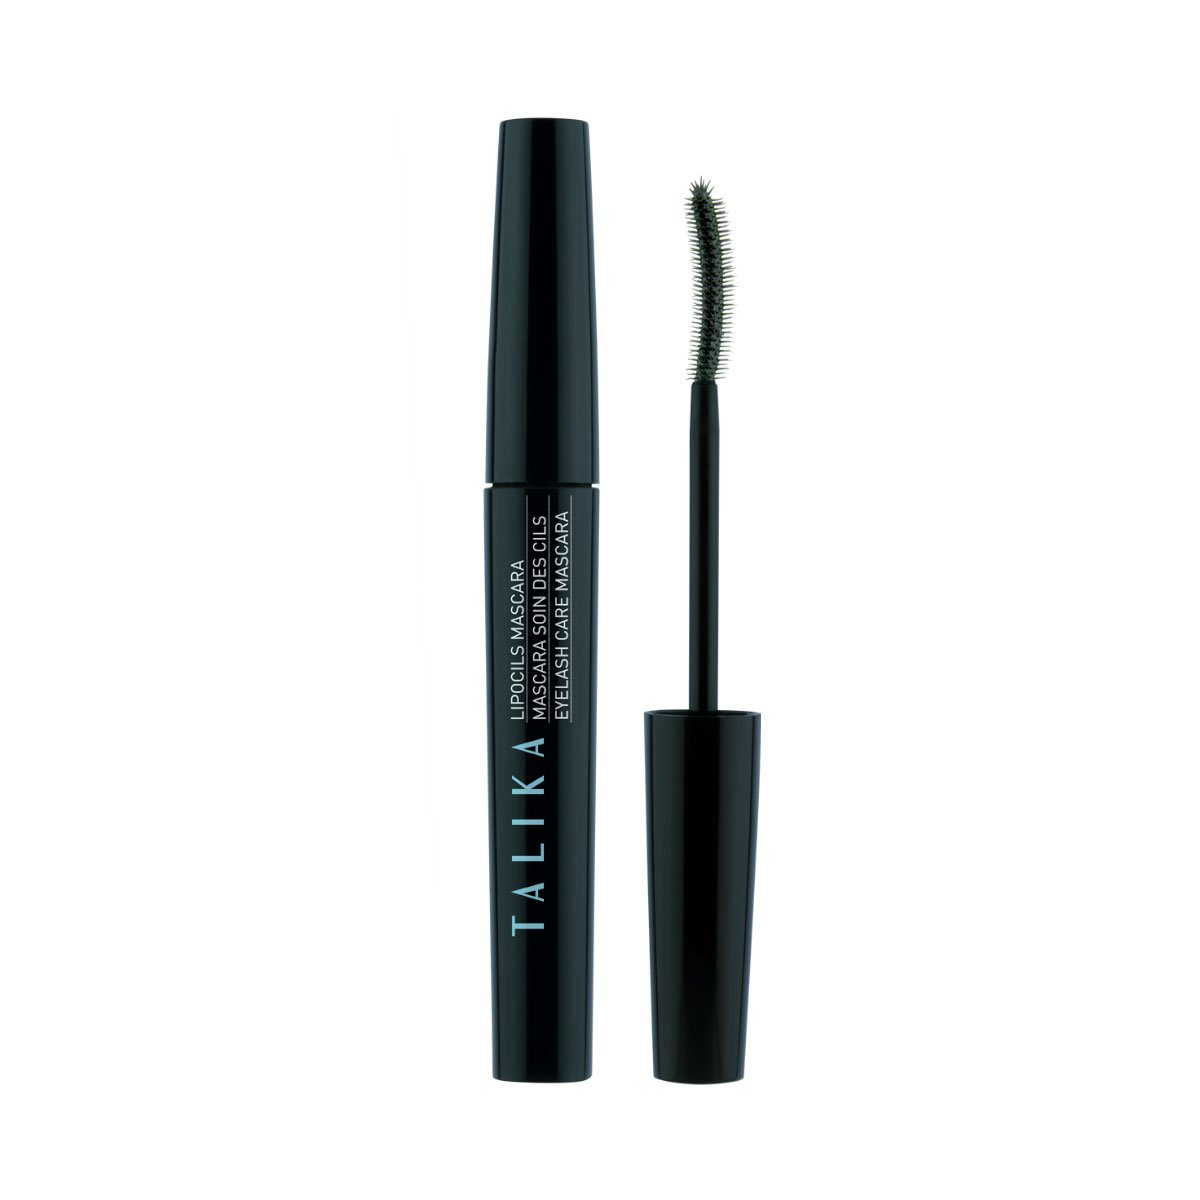 Talika Lipocils Eyelash Growth Mascara